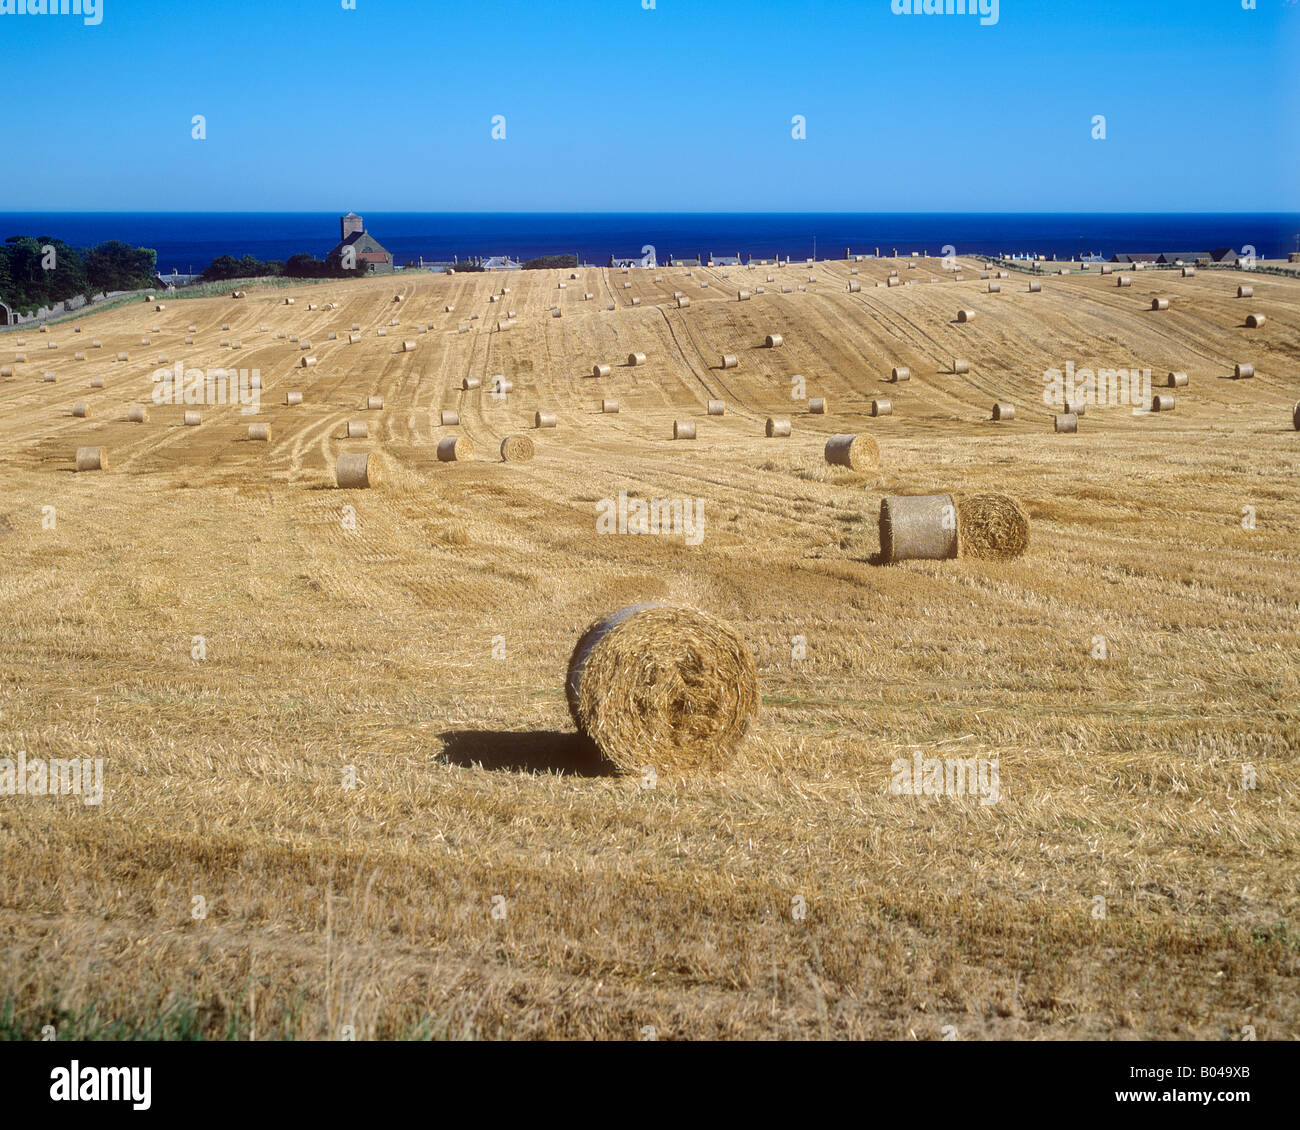 Field by the sea - Stock Image